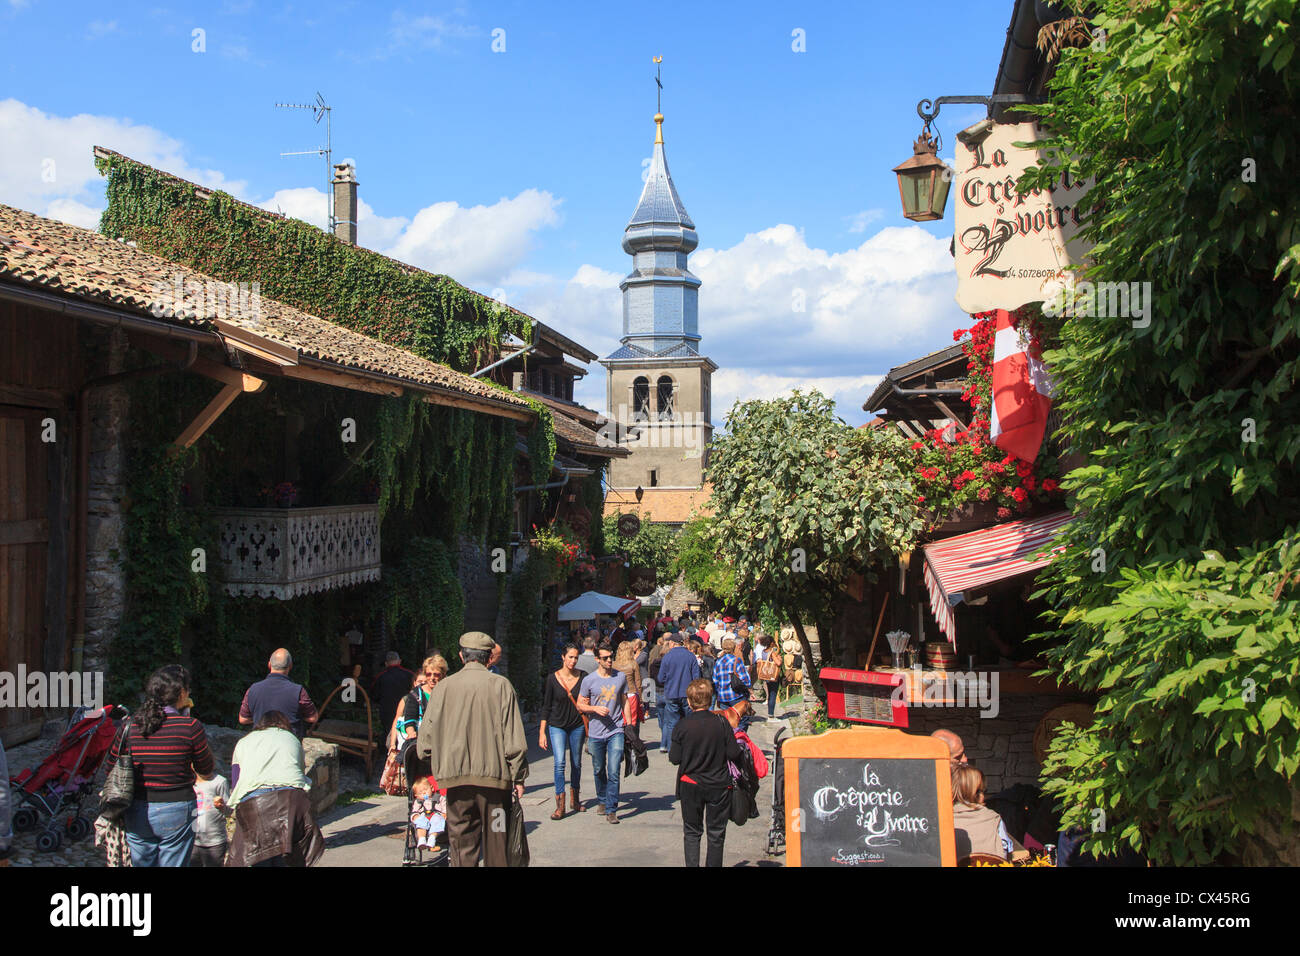 Tourist filled street in Yvoire France with the shiny steeple of the church of St Pancras in the background - Stock Image